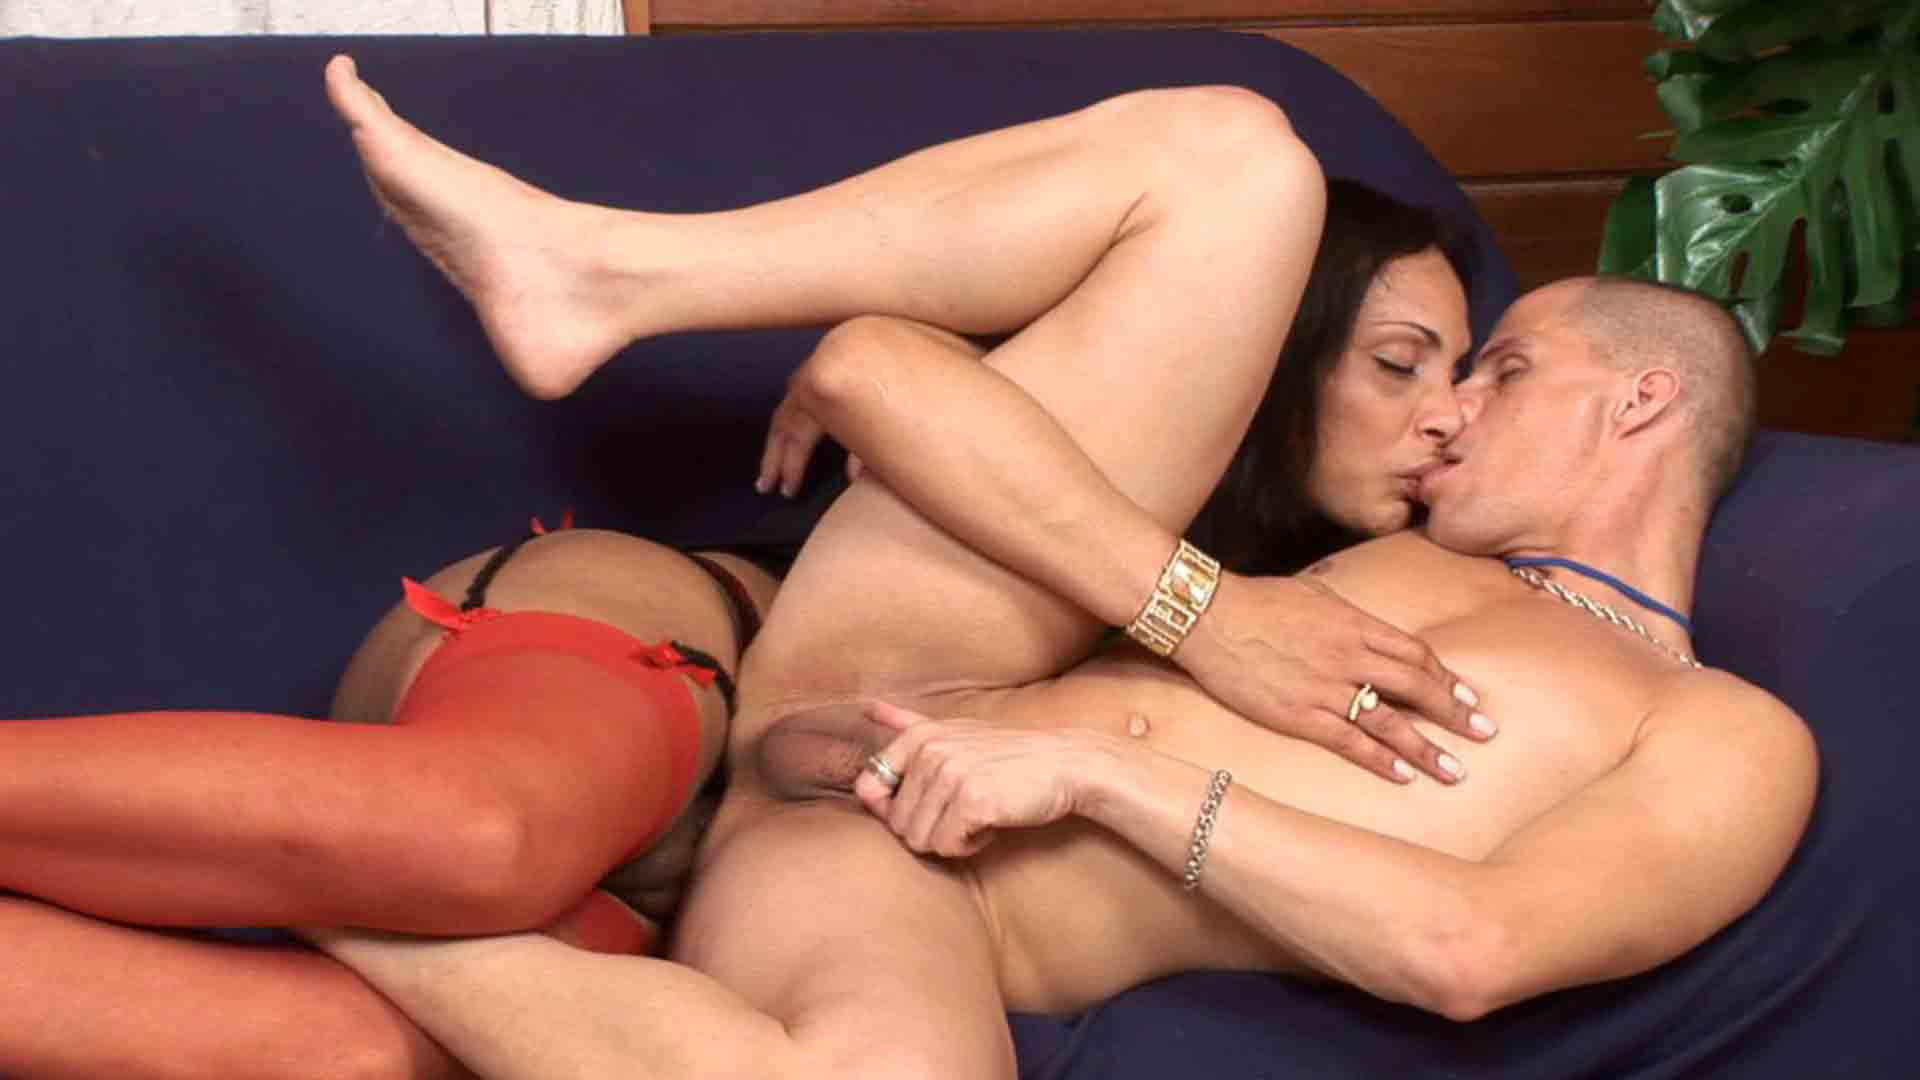 Bianca & Eduardo tranny fucks boy video